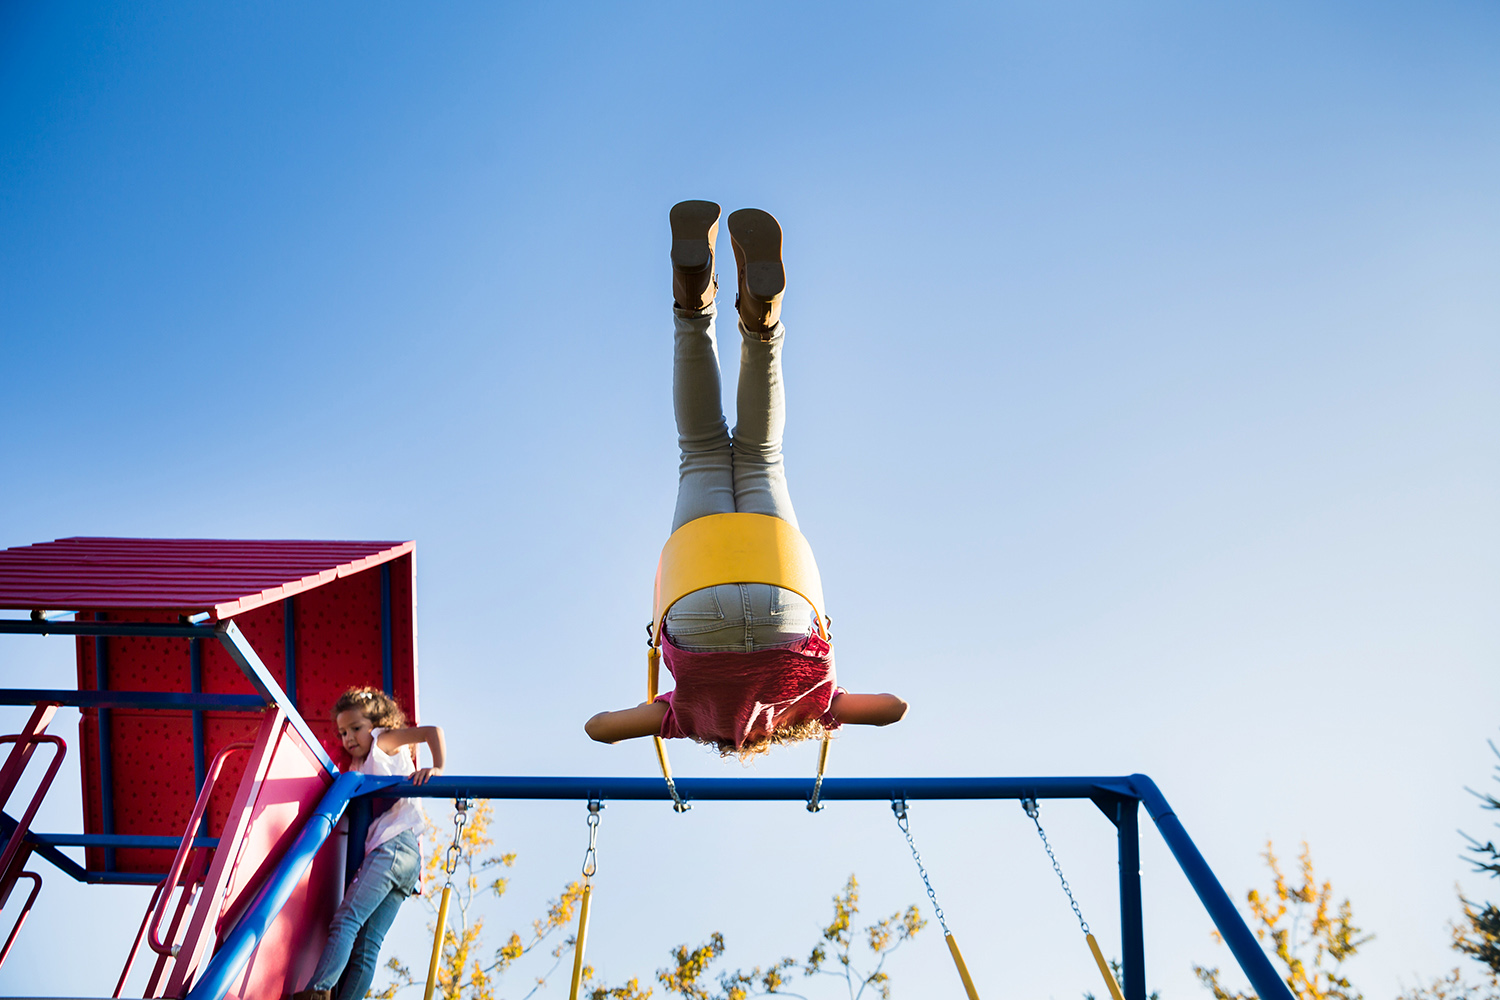 children swinging on their backyard play structure